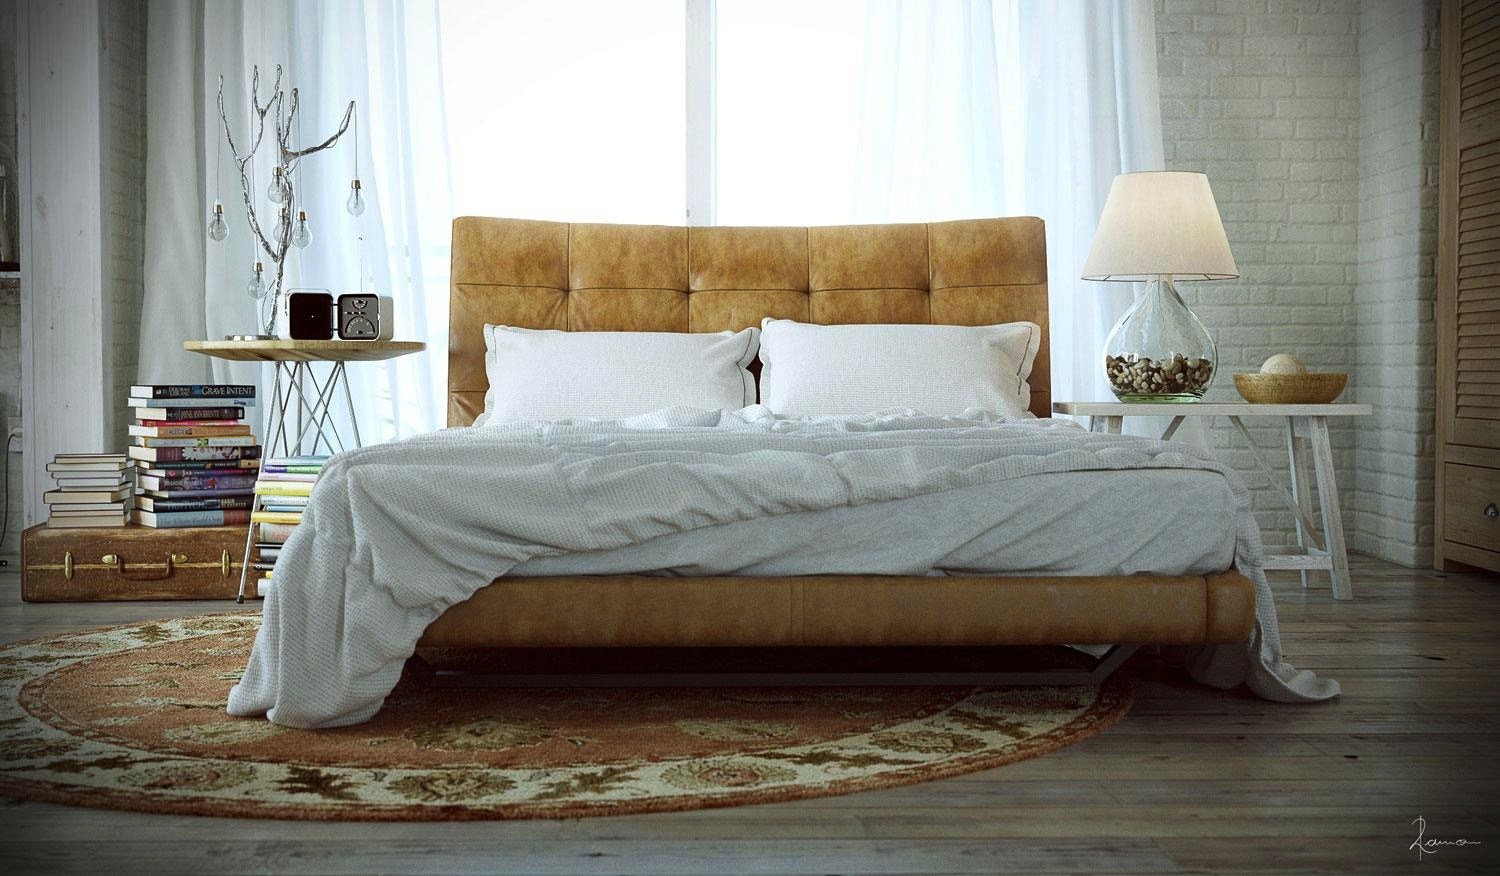 Leather Bed Takes Center Stage Picked Out By A Circular Persian Rug